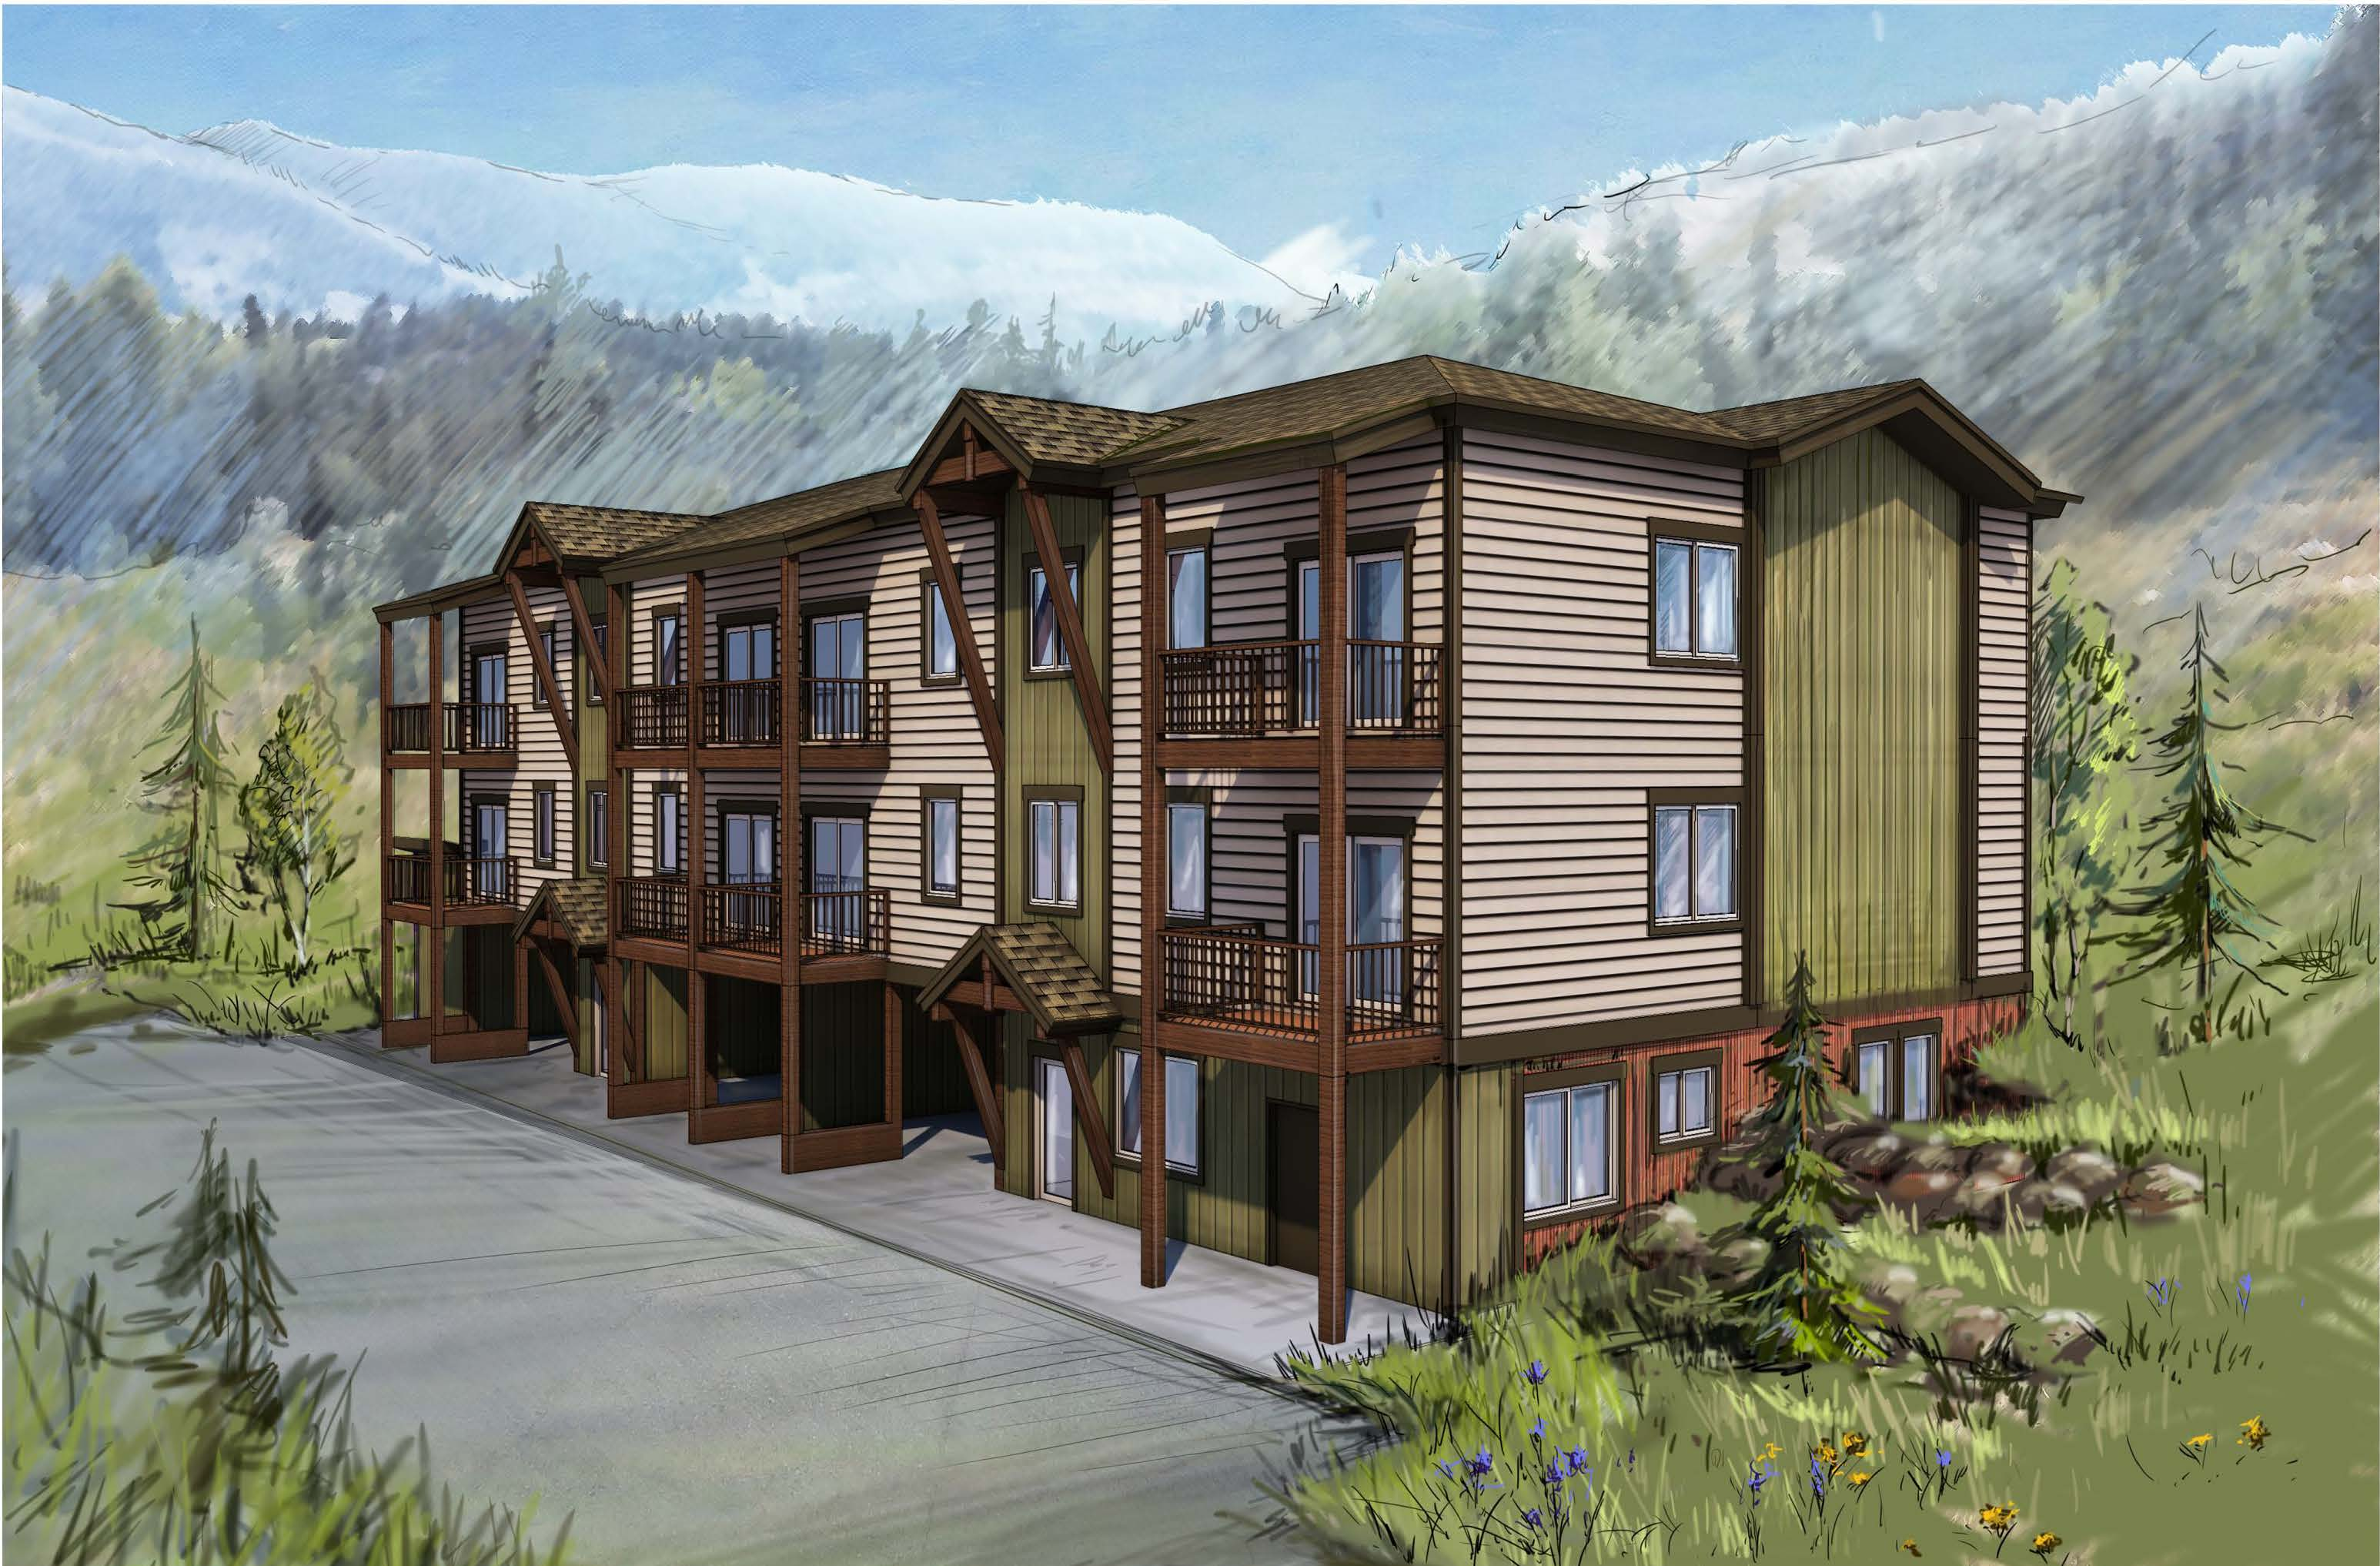 West Hills Phase 2 Condo Building Rendering